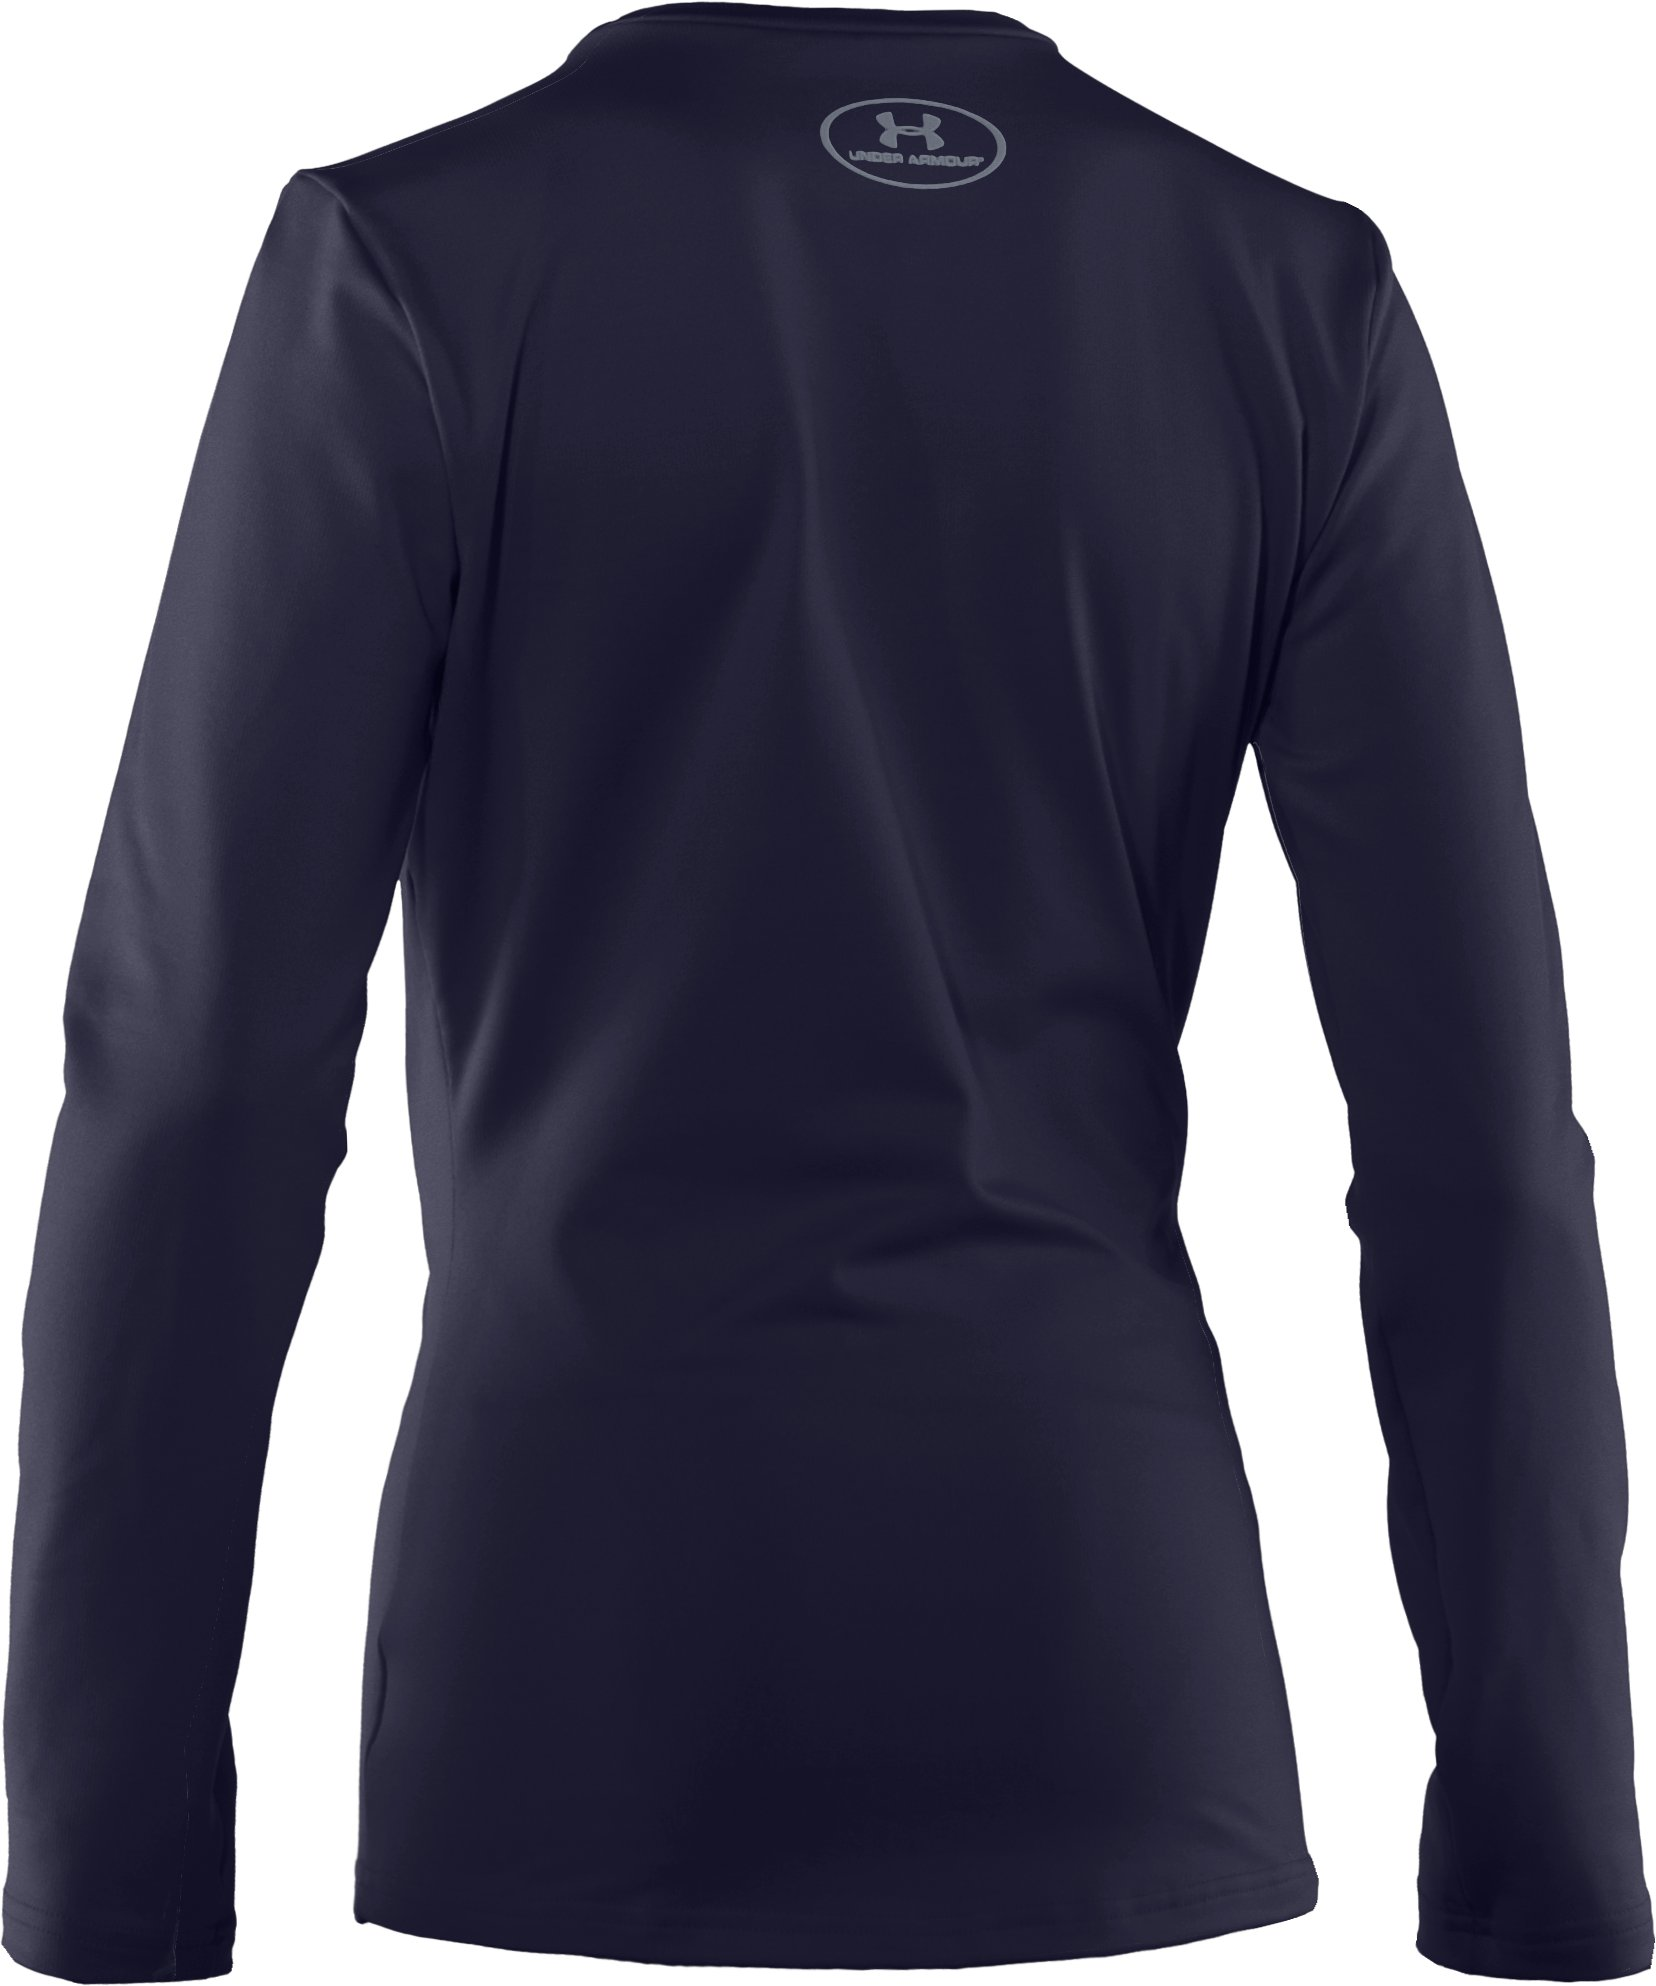 Boys' ColdGear® Evo Fitted Baselayer Crew, Midnight Navy, undefined